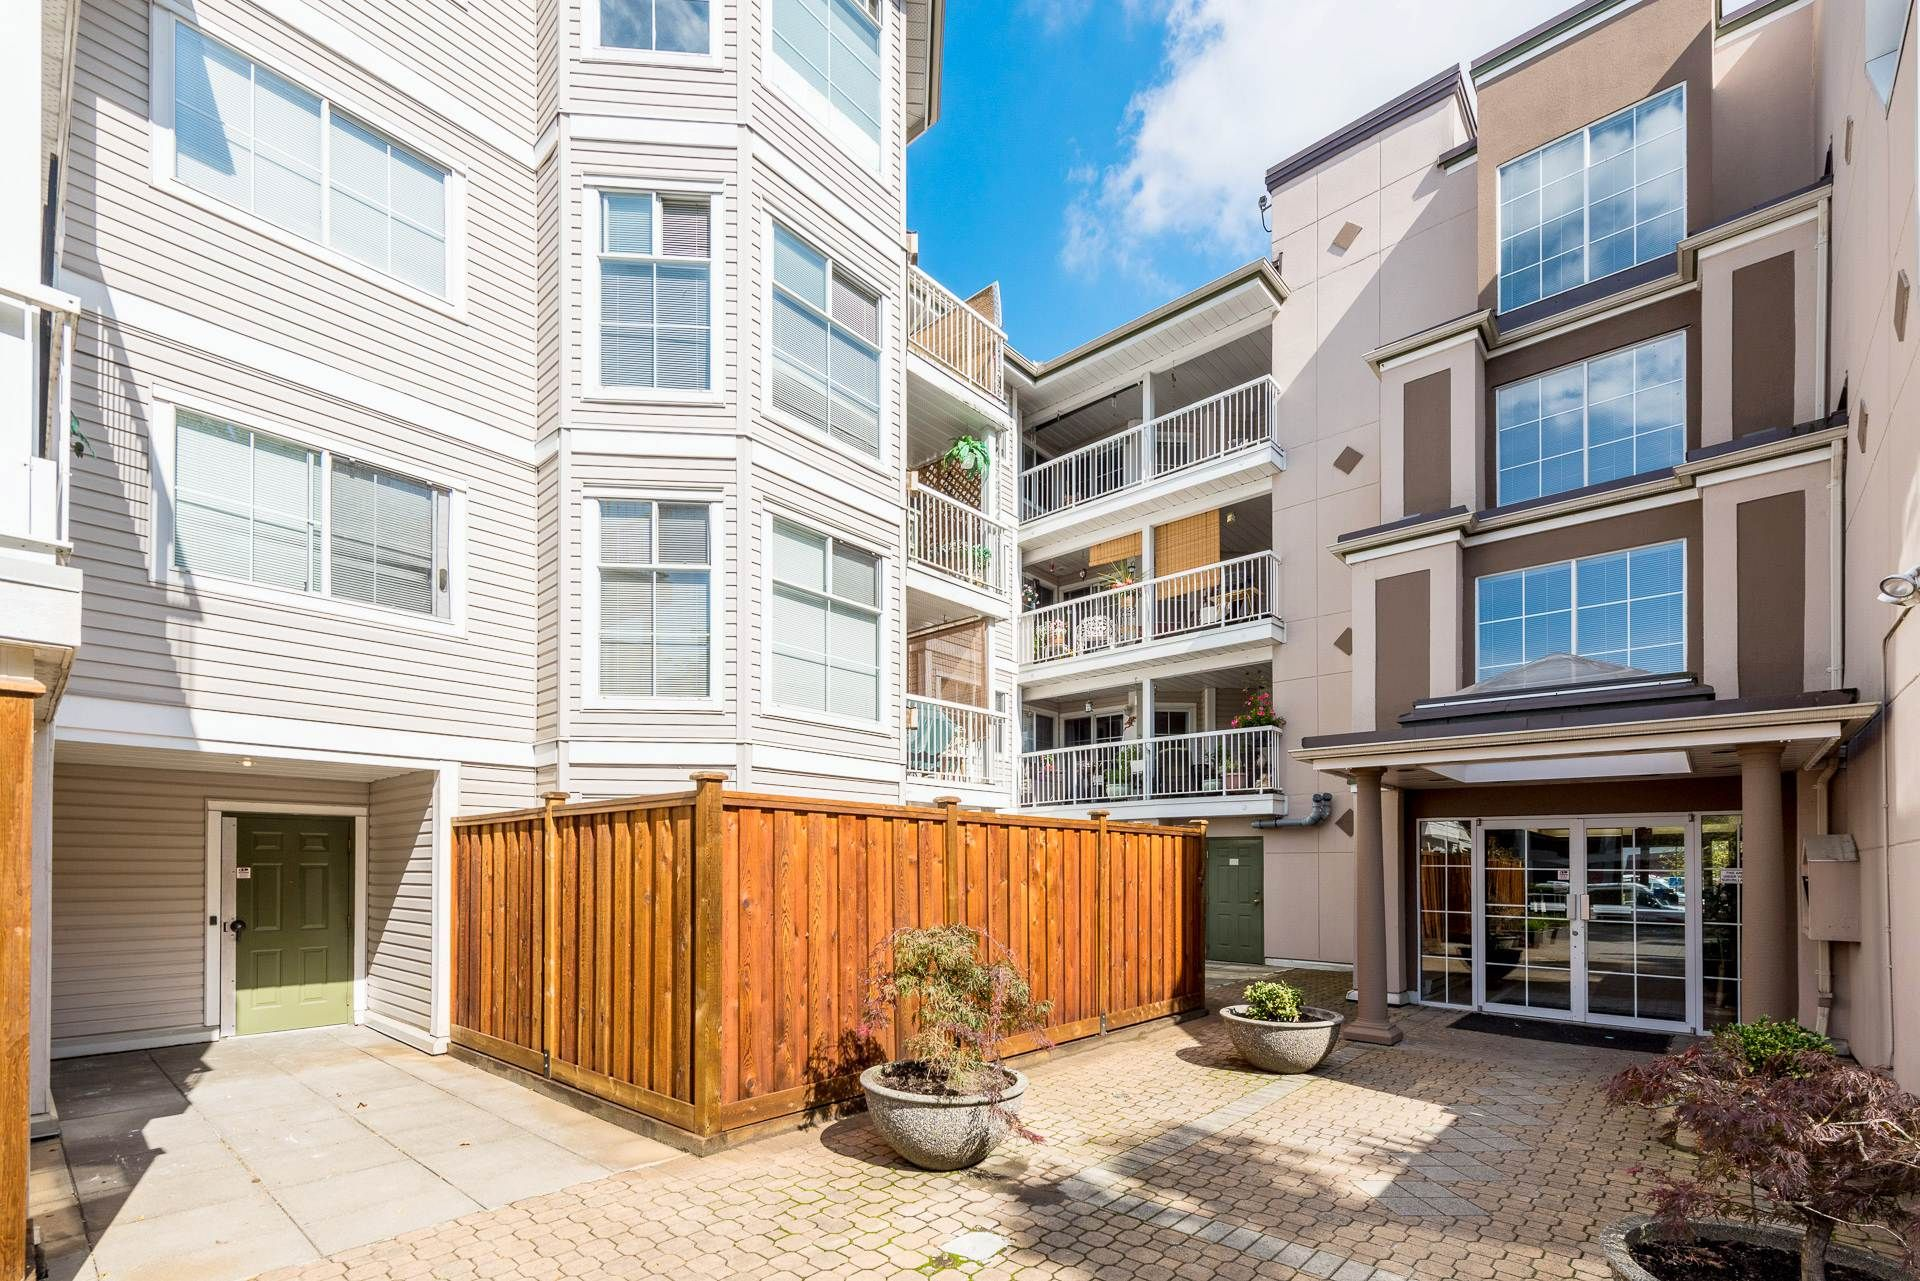 """Main Photo: 312 2678 DIXON Street in Port Coquitlam: Central Pt Coquitlam Condo for sale in """"The Springdale"""" : MLS®# R2307158"""